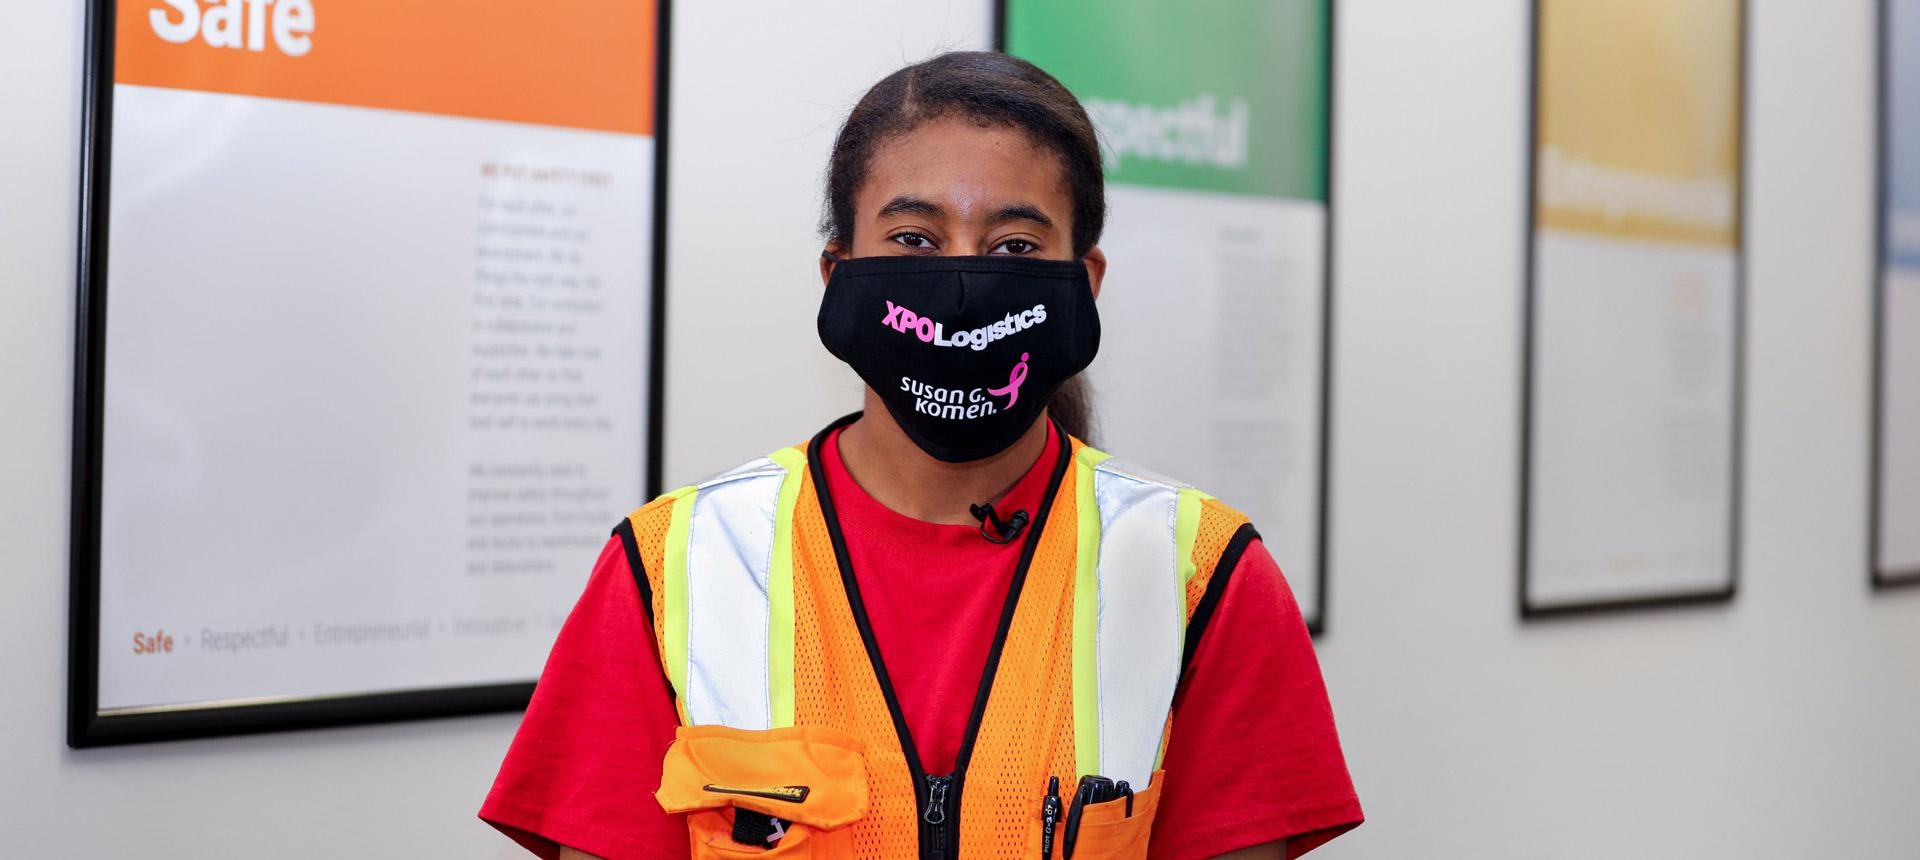 XPO employee in mask